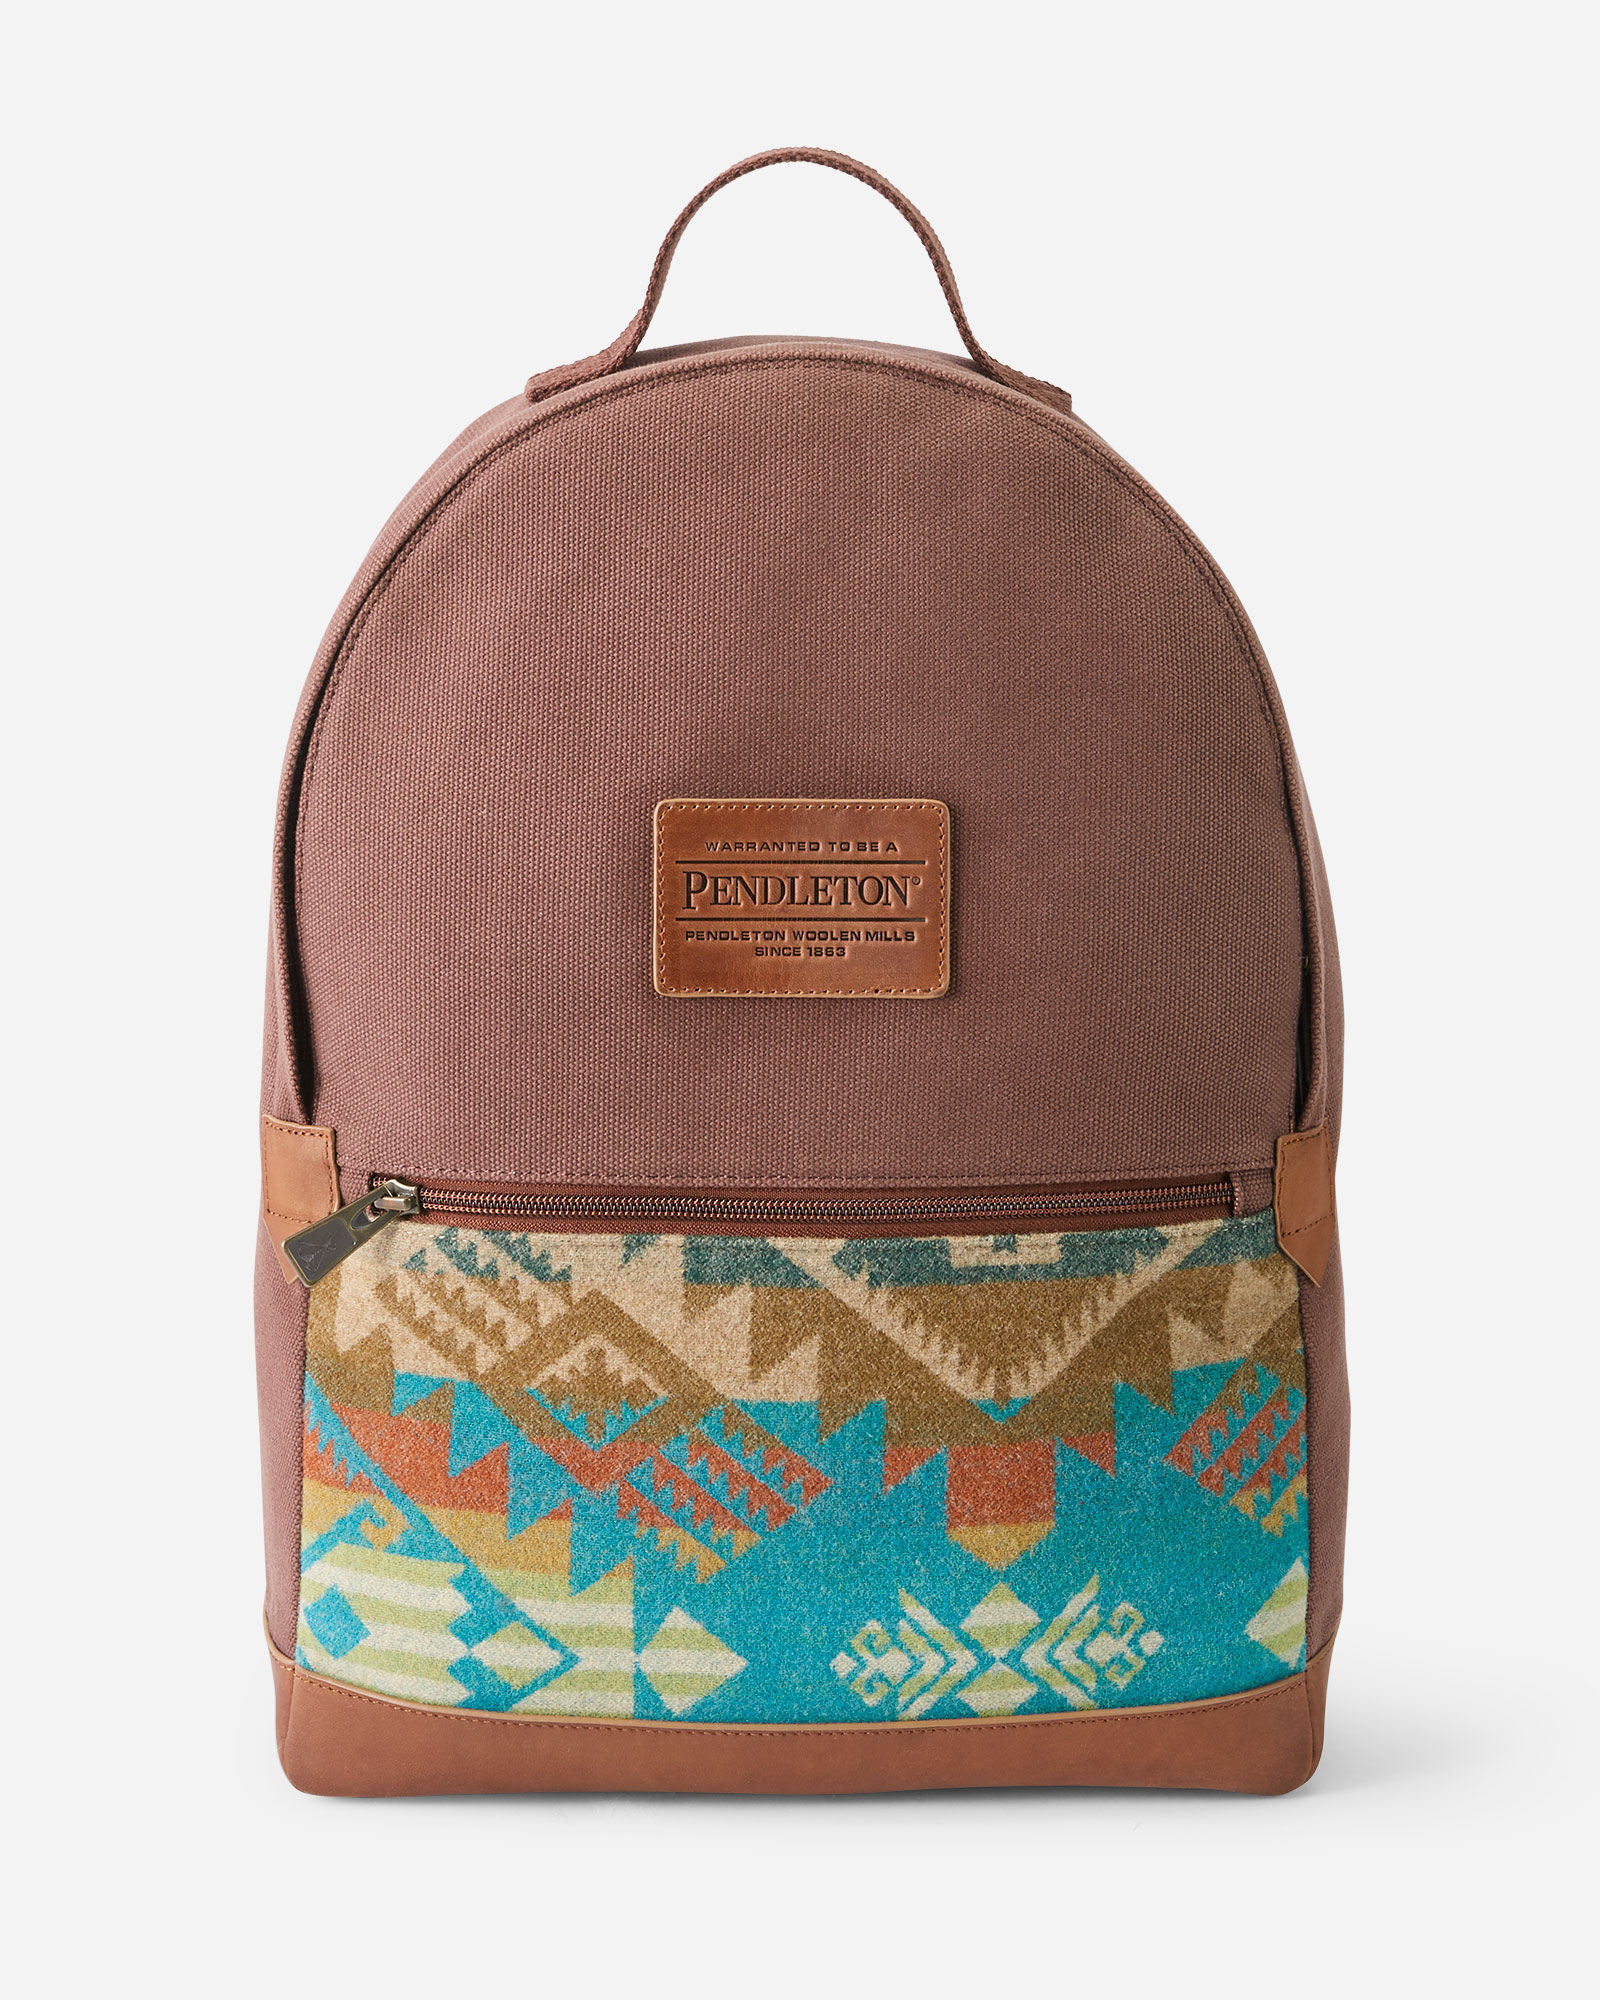 Journey West Backpack from Pendleton